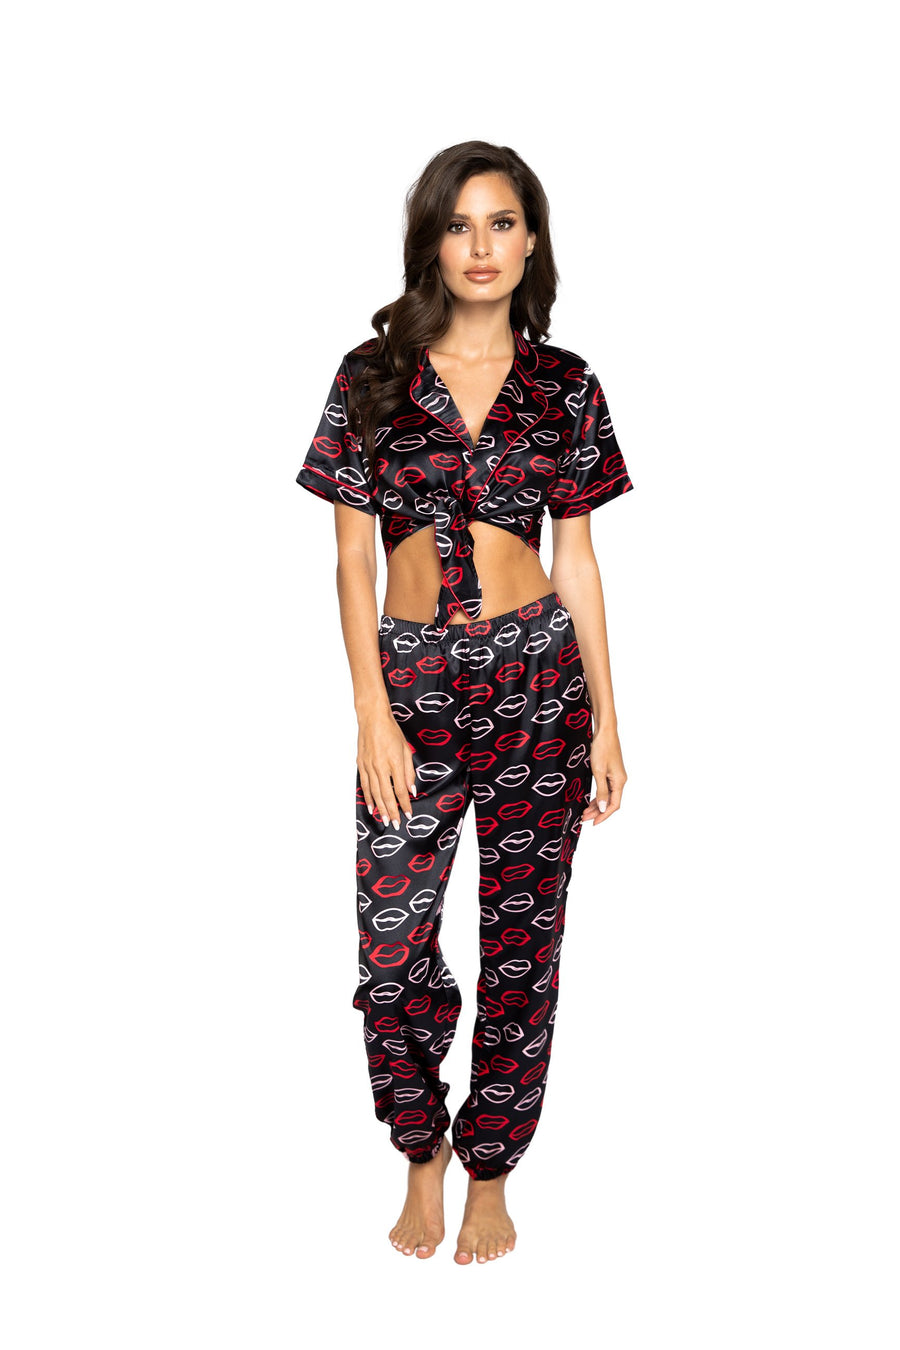 Roma Confidential LI351 Lips Satin Pajama Set Chic 2 Piece Satin Pajama Set with Collared Tie Top and Full Pant Bottoms Adorned with a Lip Print